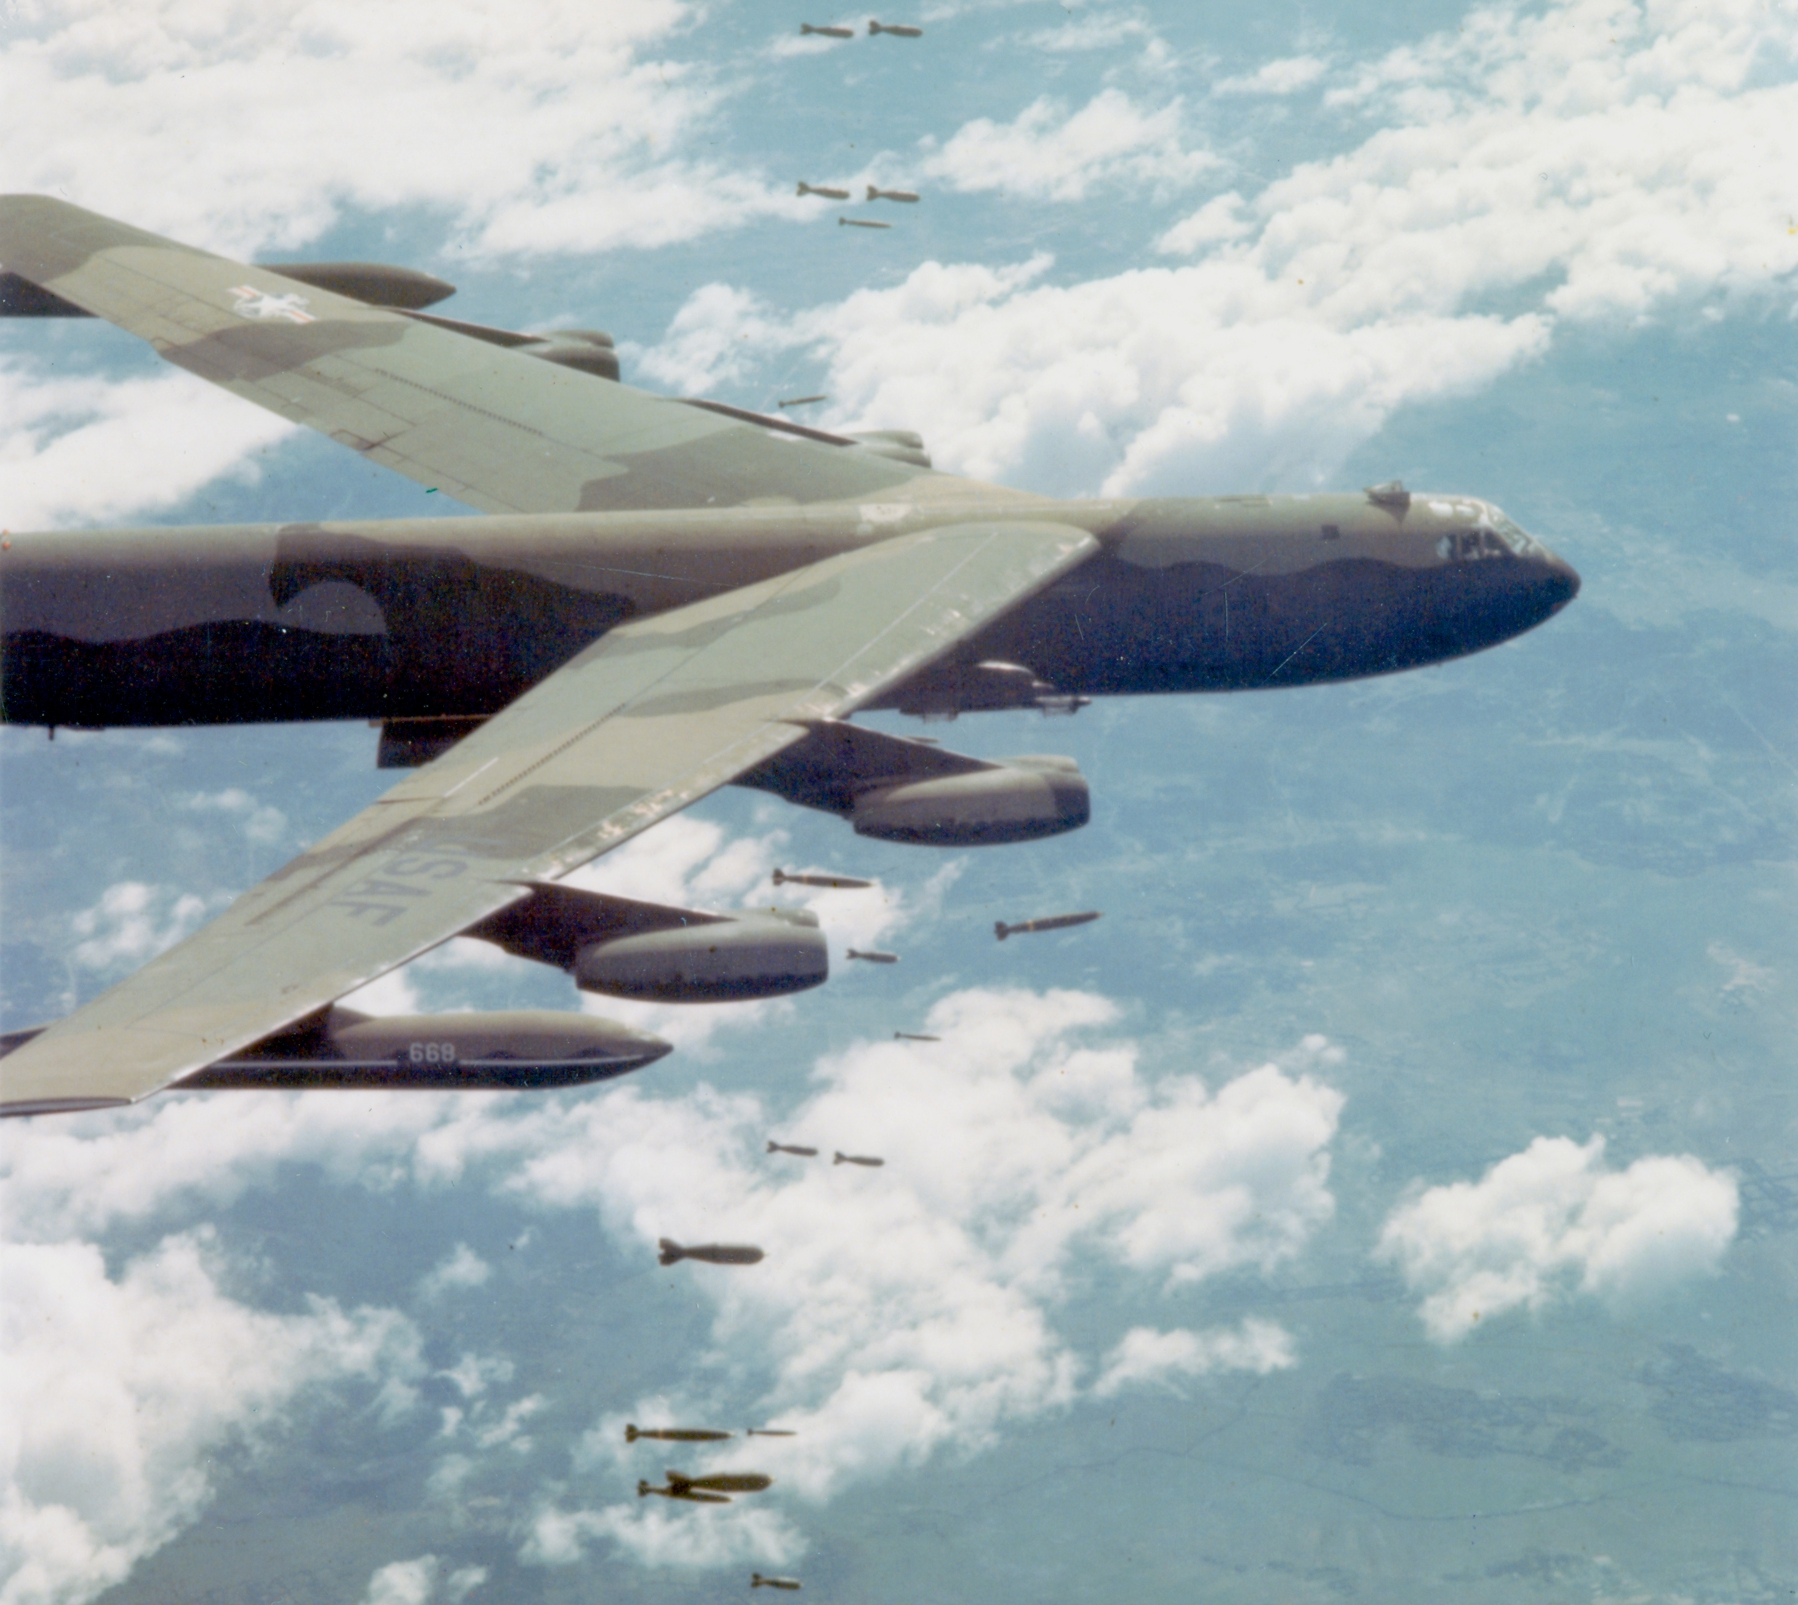 https://upload.wikimedia.org/wikipedia/commons/0/0d/B-52D_dropping_bombs_over_Vietnam.jpg